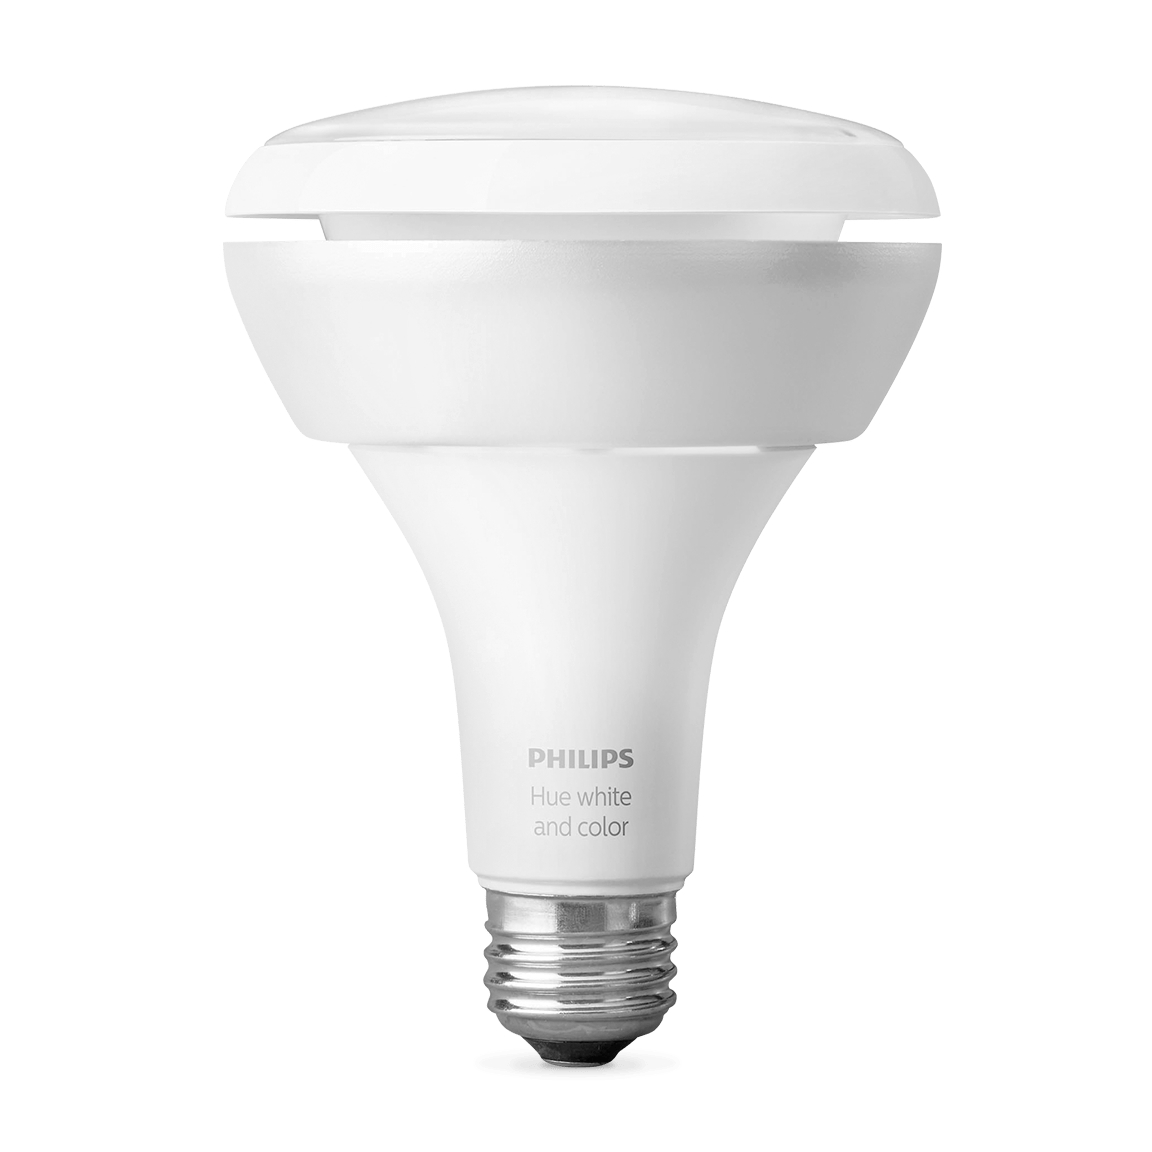 Philips Hue Br30 Smartthings Philips Hue White And Color Ambiance Led Light Bulb